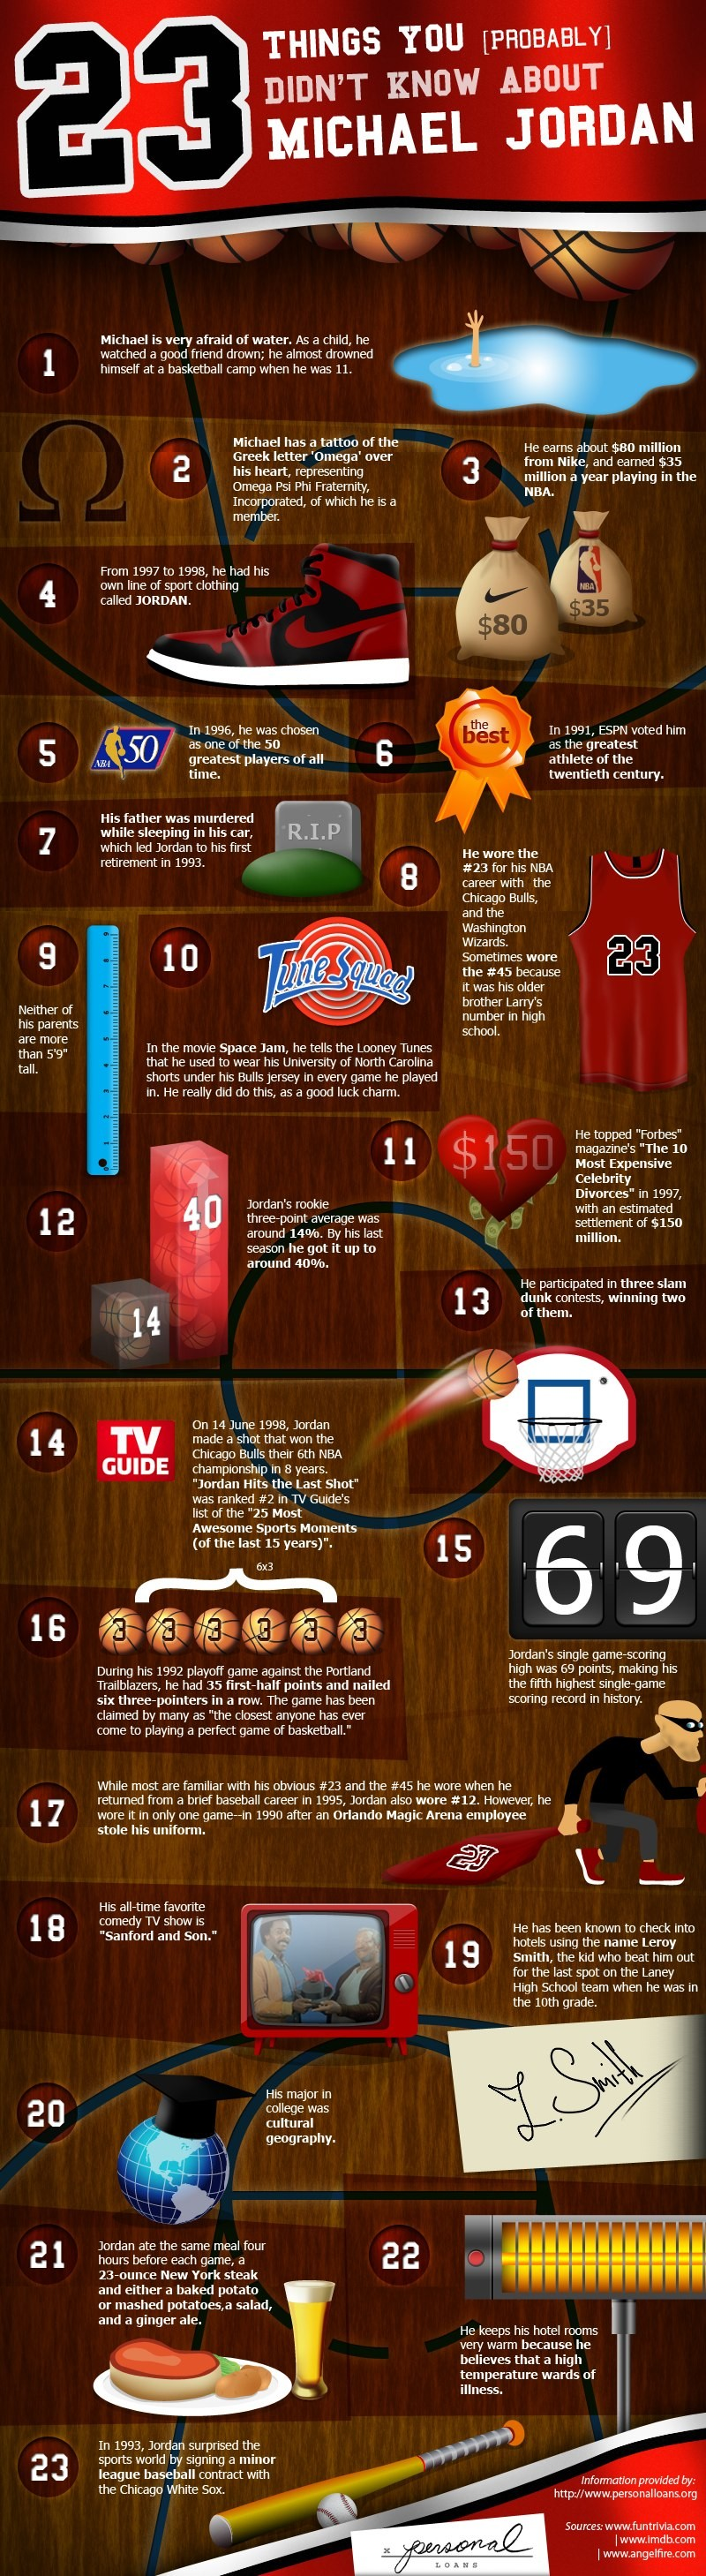 23 Things You Don't Know About Michael Jordan [Infographic]